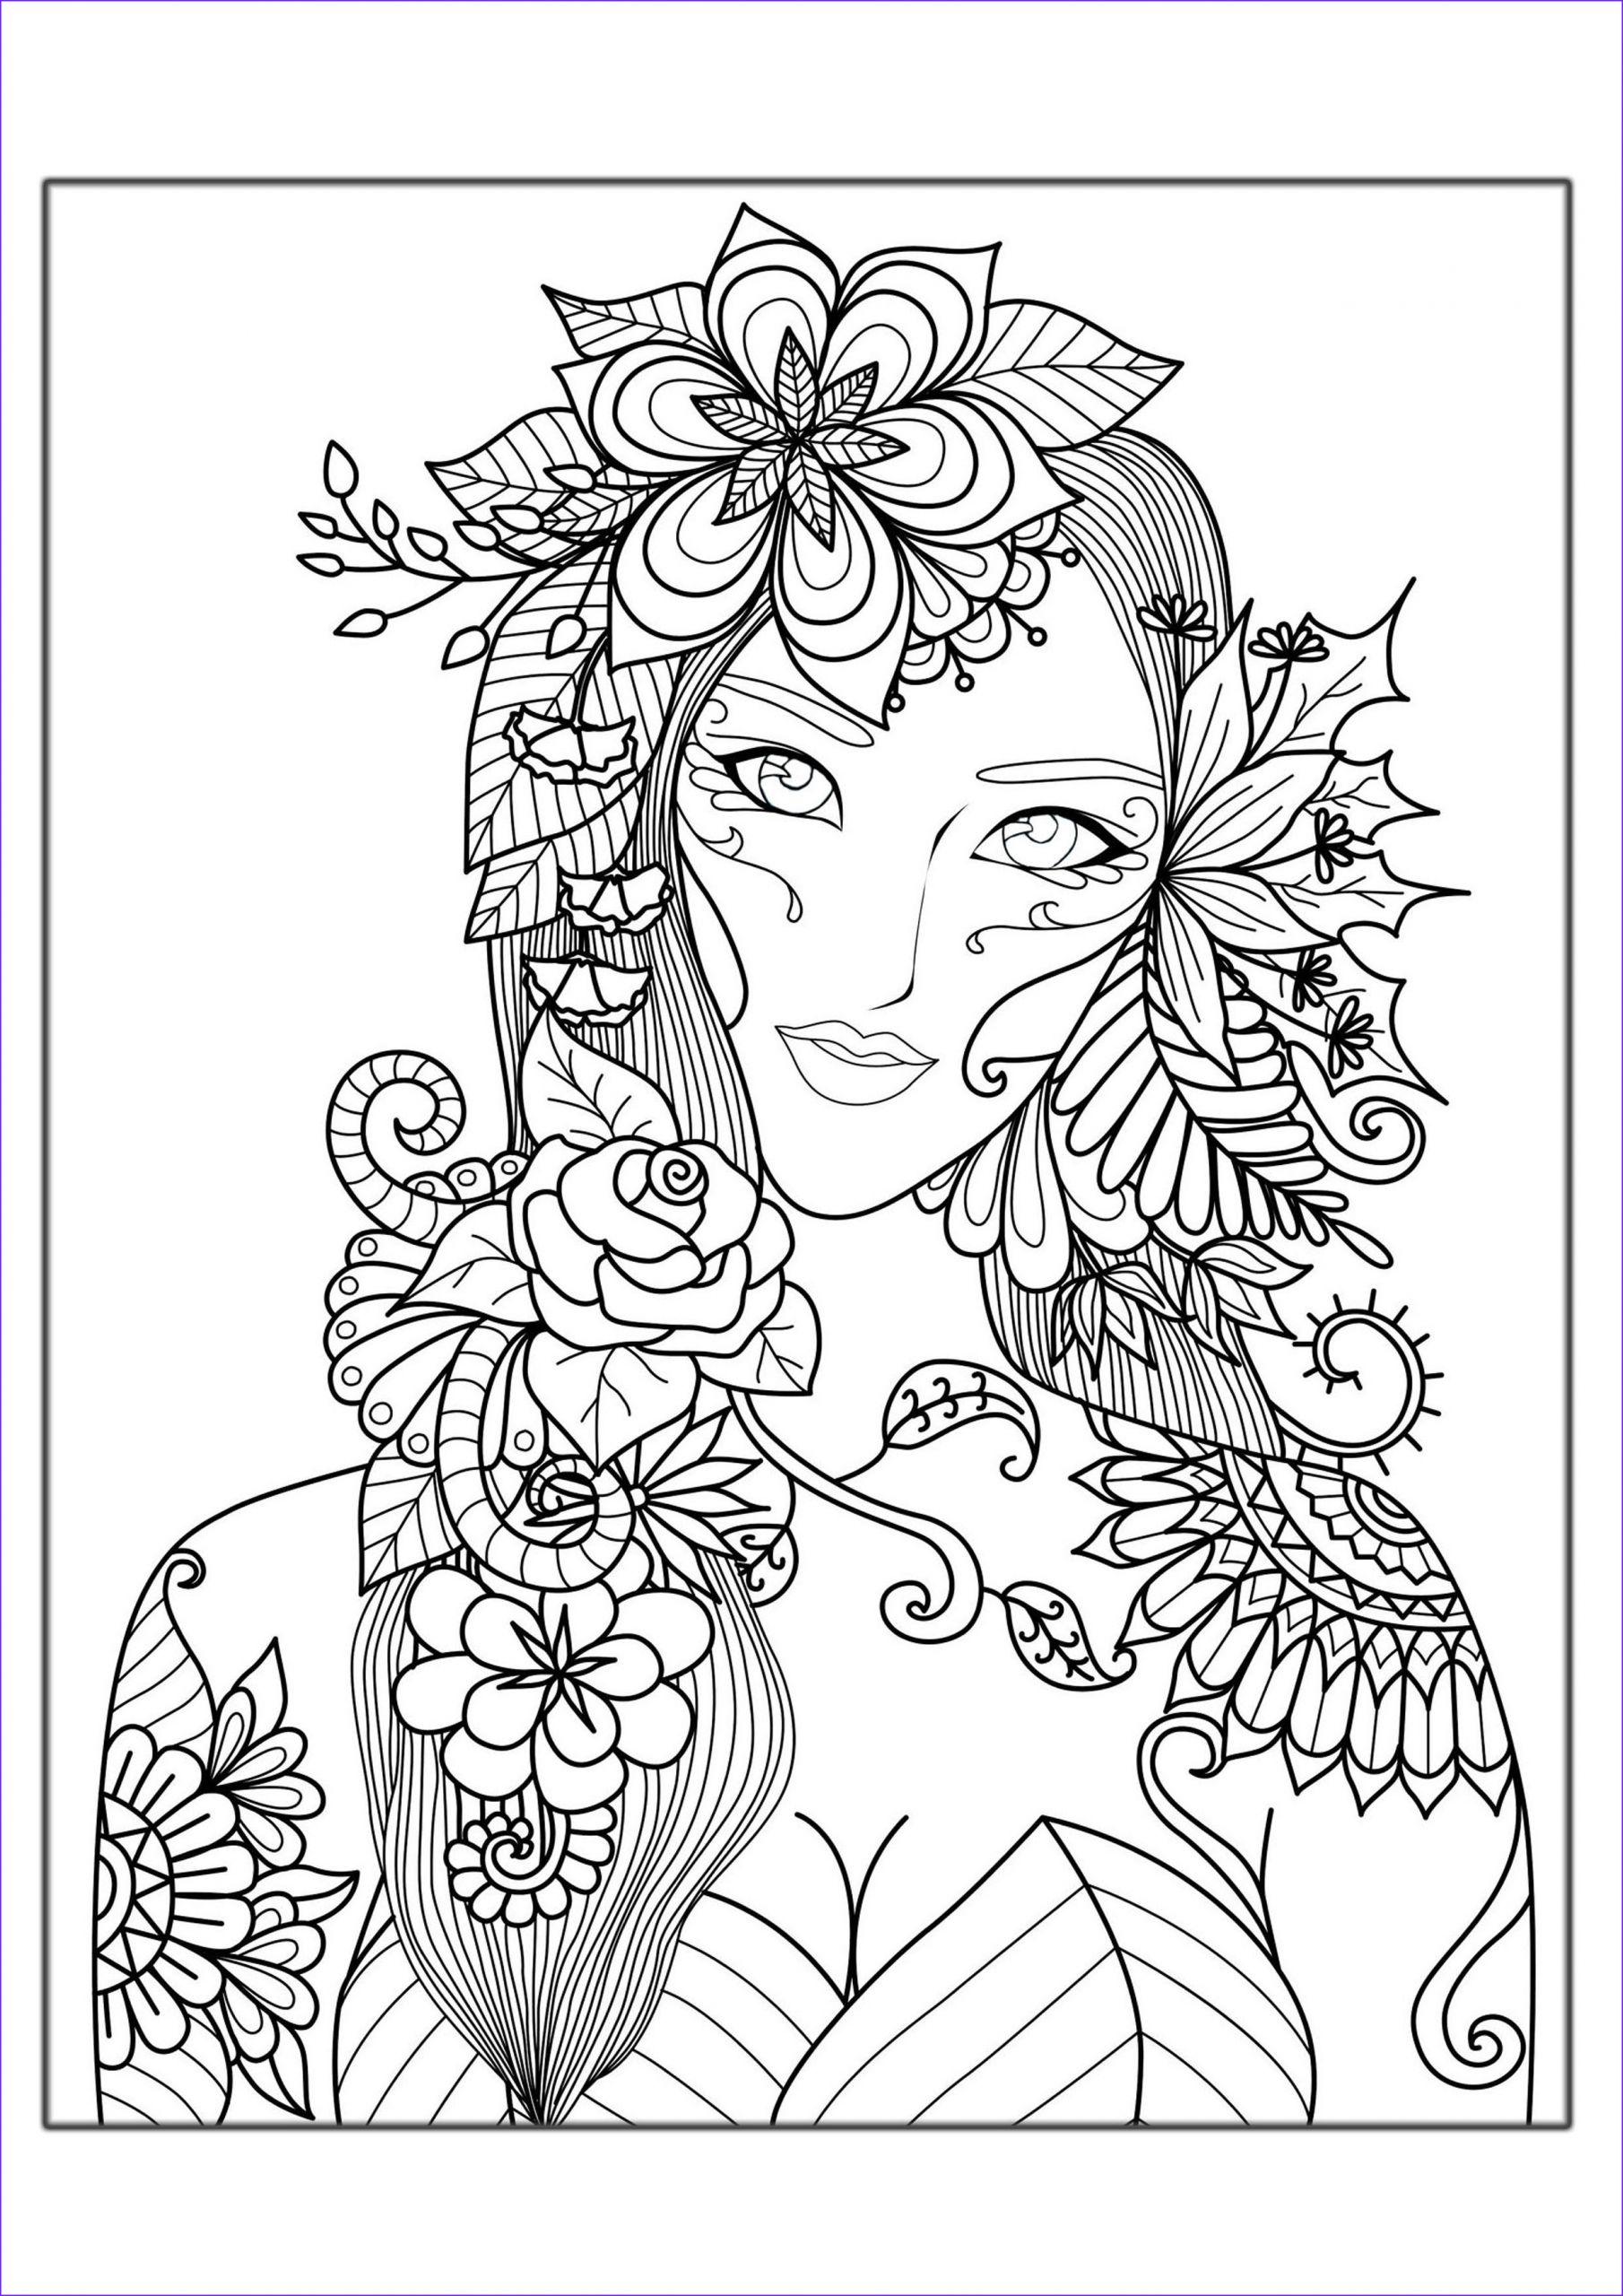 Printable Coloring Page Elegant Photography Hard Coloring Pages for Adults Best Coloring Pages for Kids